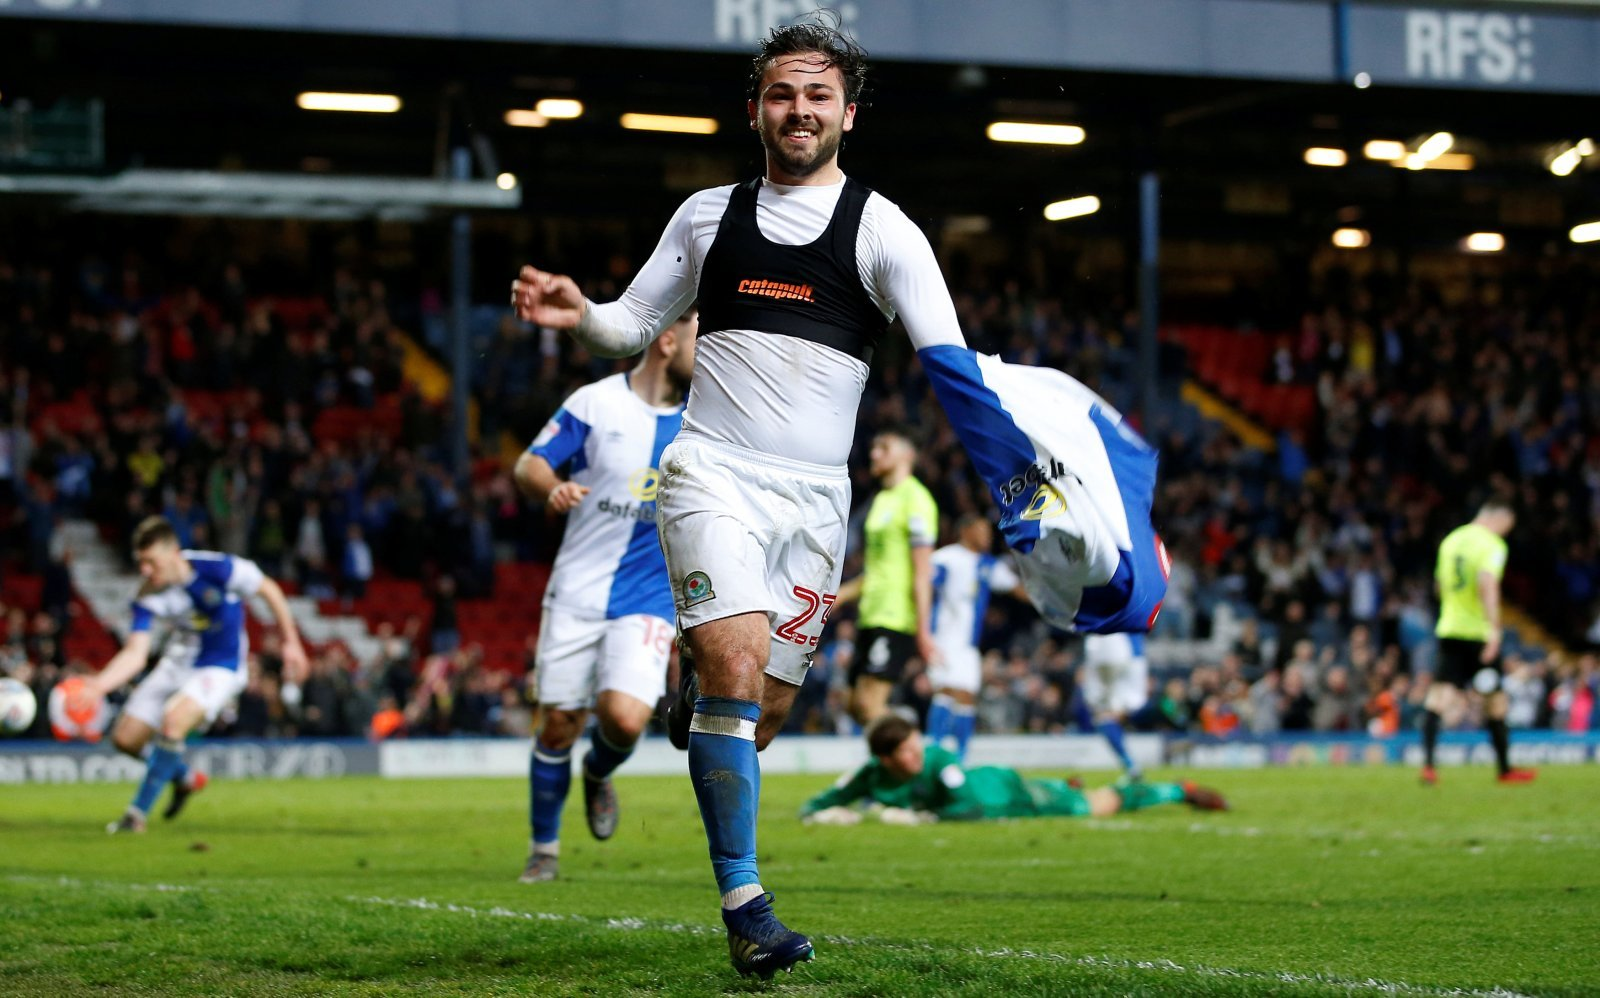 Newcastle should consider signing Bradley Dack in January